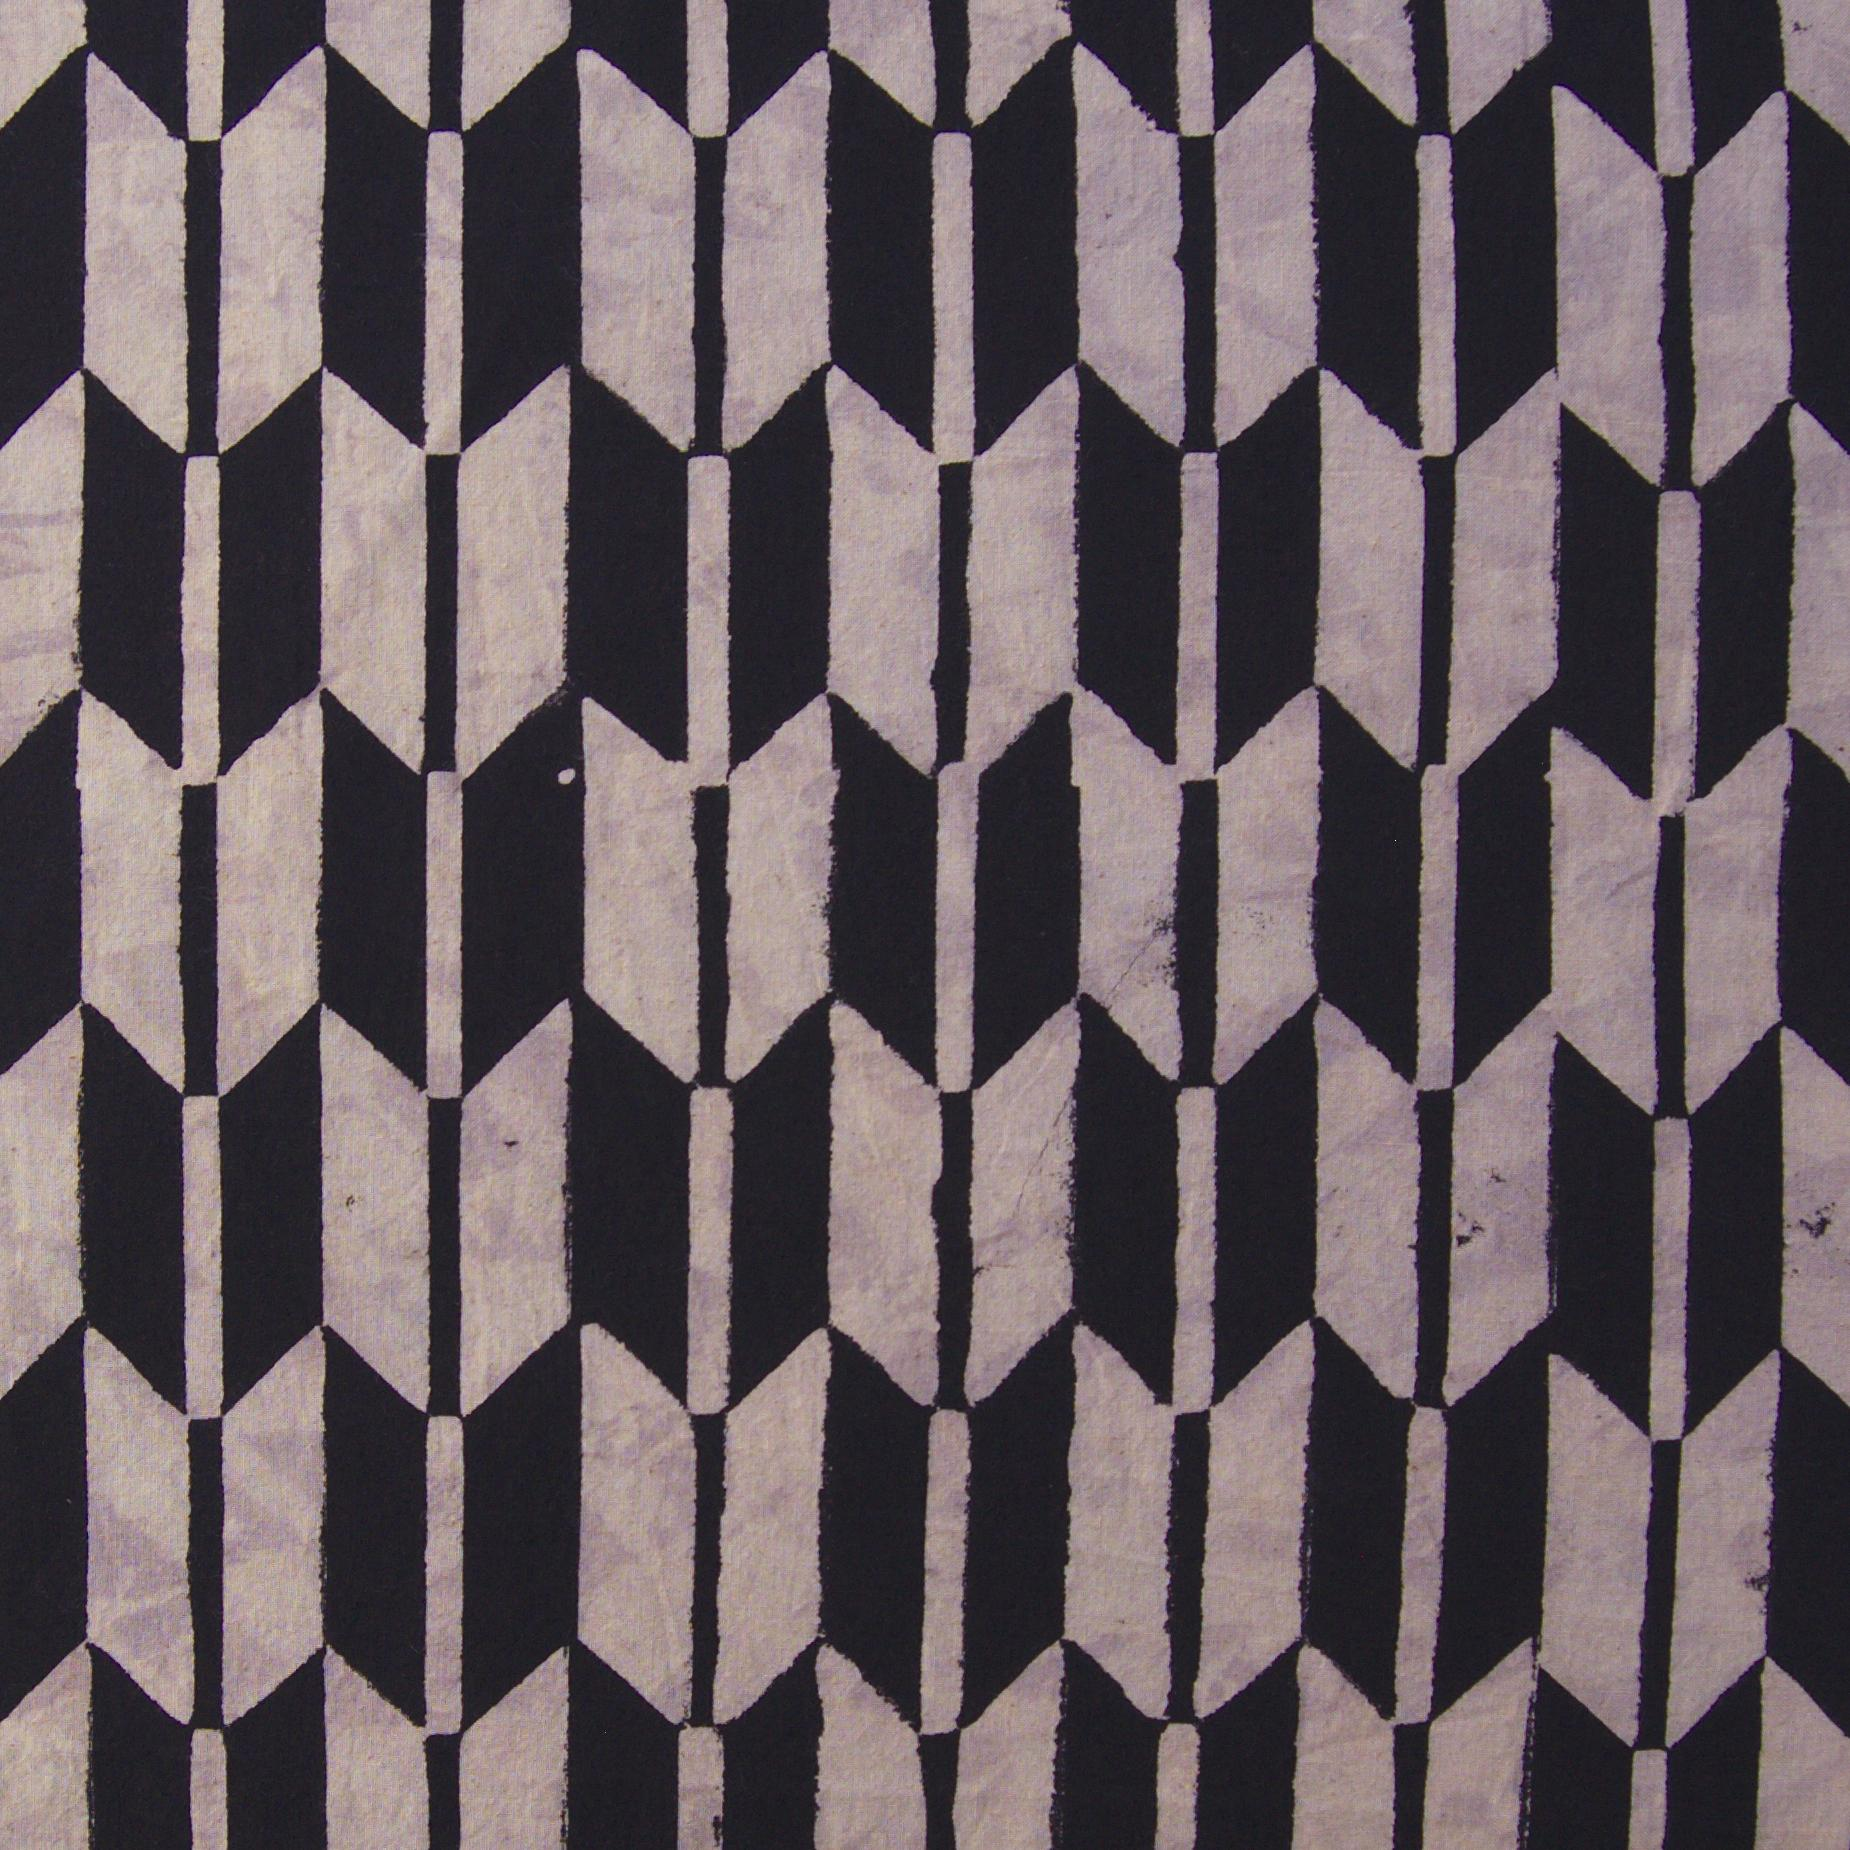 100% Block-Printed Cotton Fabric From India- Ajrak - Black White Resist Fletching Print - Flat